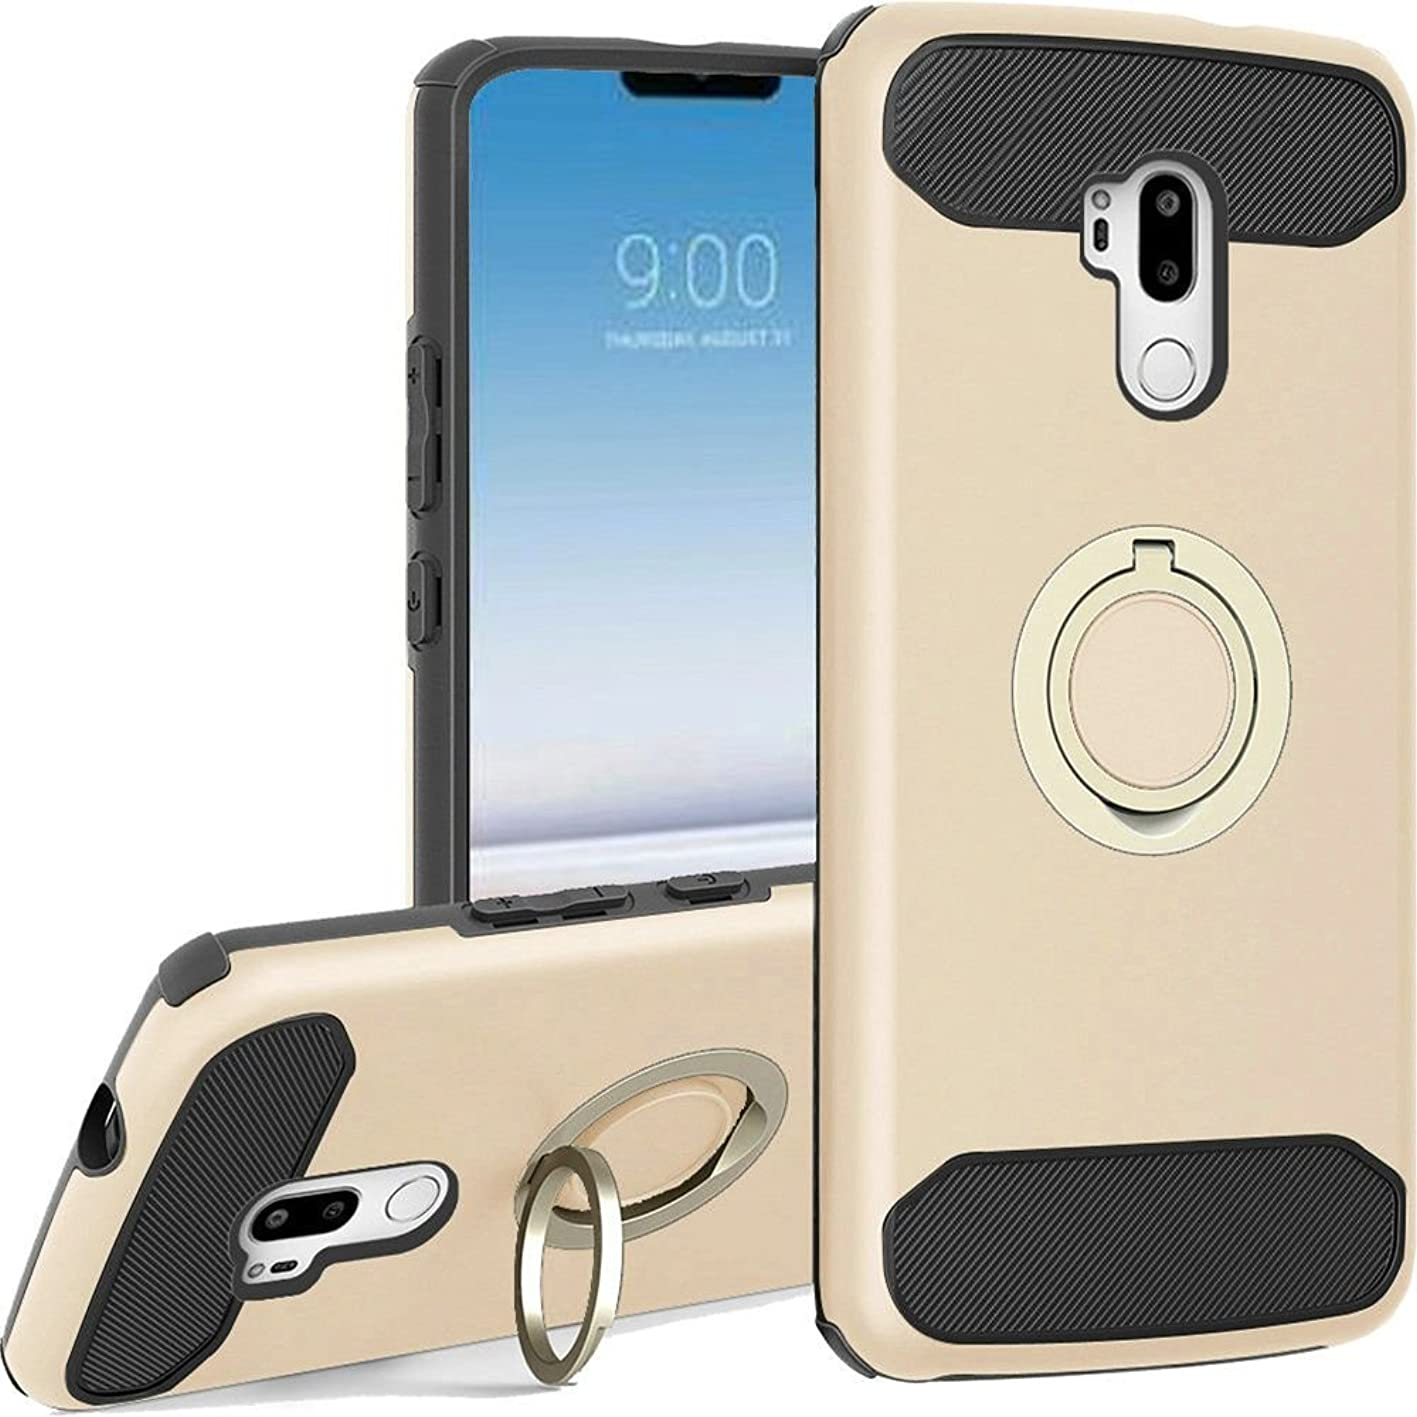 Luckiefind Compatible With LG G7/LG G7 ThinQ, Tough TPU Rubber Fused Hybrid Carbon Fiber Premium Design with Magnetic Ring Stand (Rose Gold) xegjevbffyp437